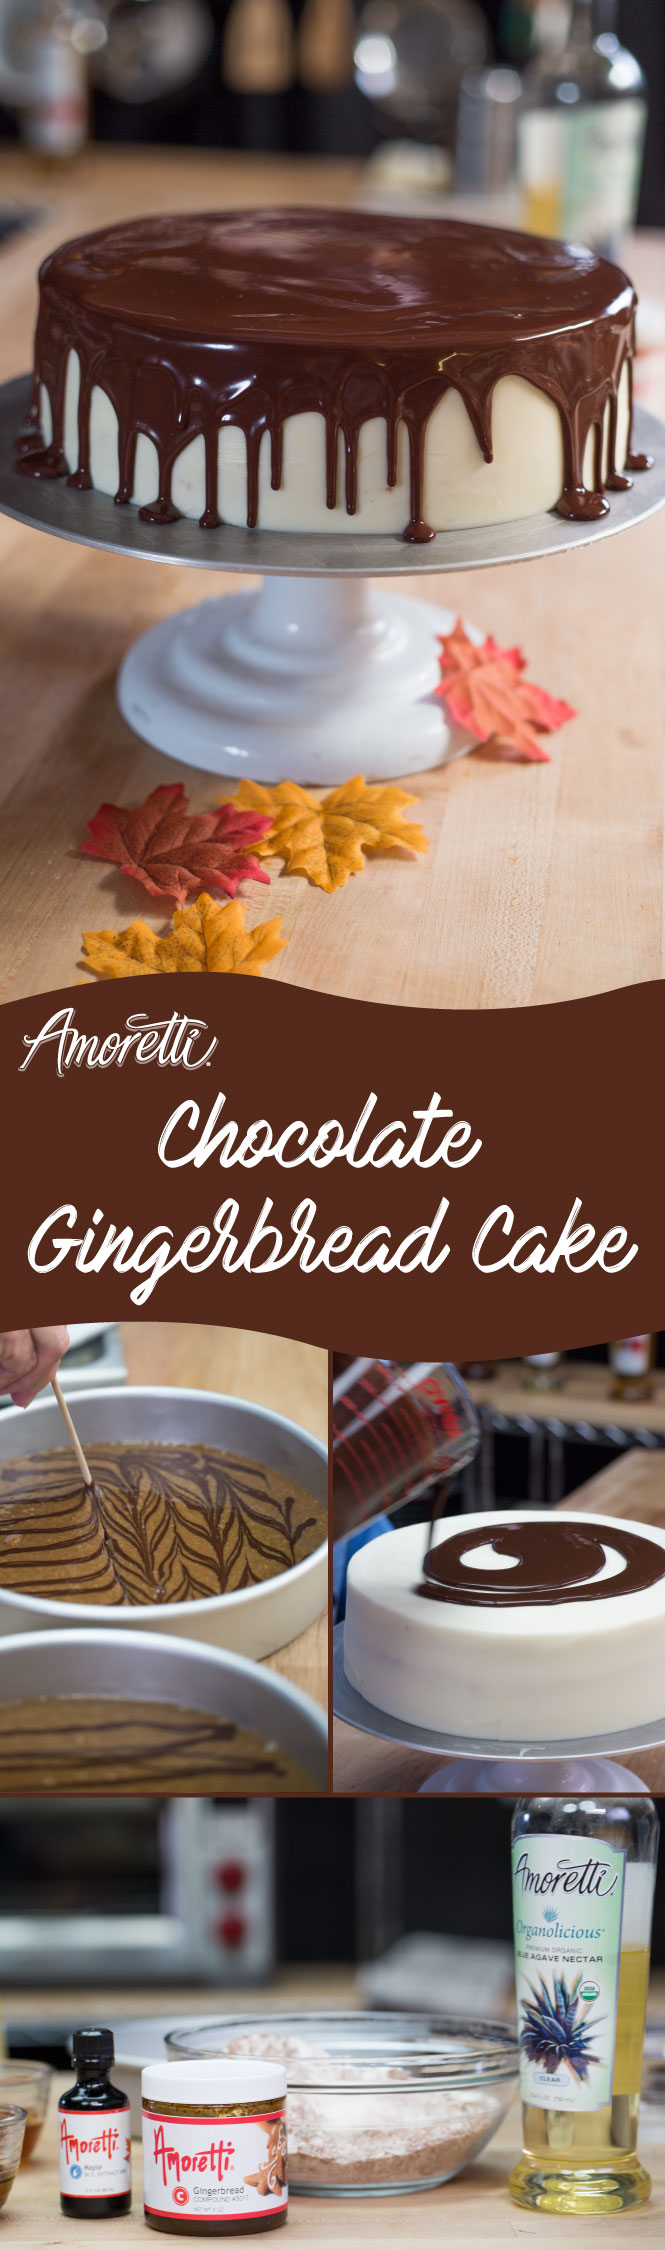 This delicious cake is sure to become a new holiday favorite!